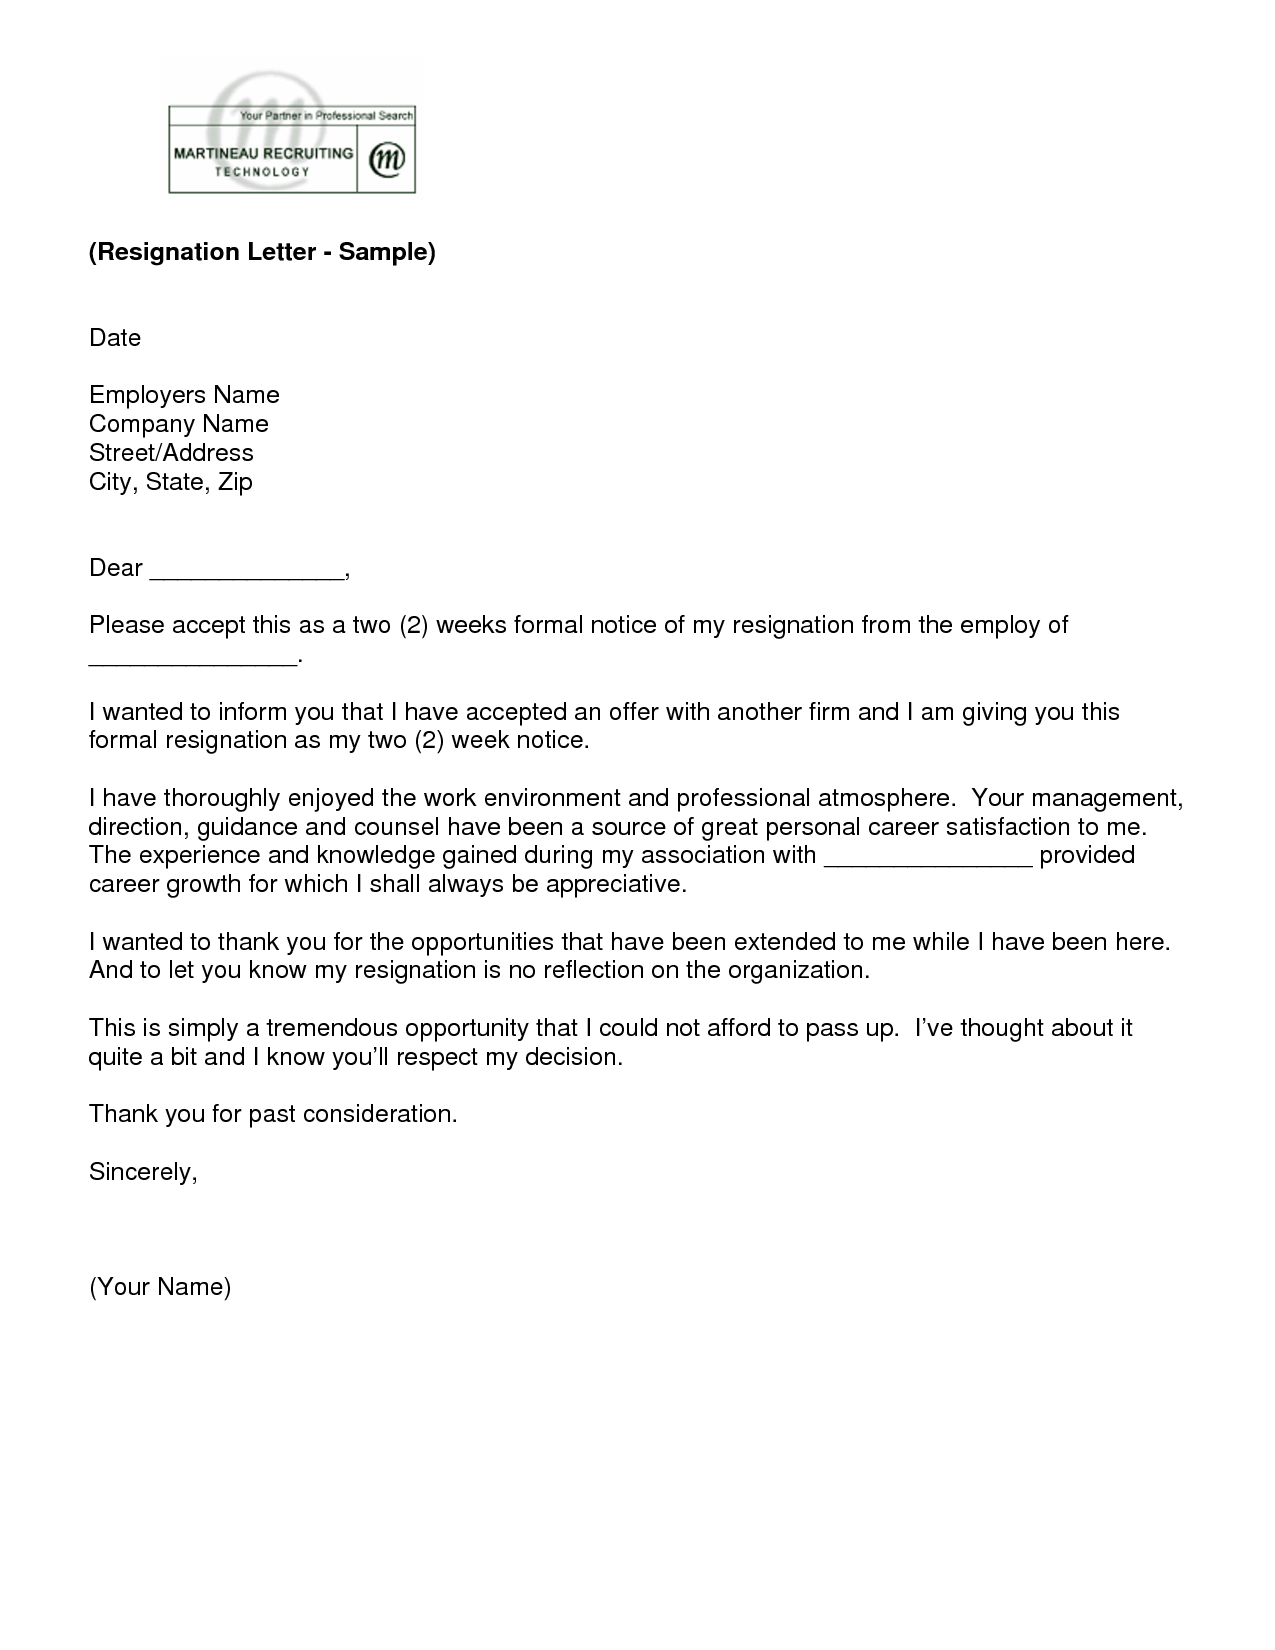 Letter of resignation 2 weeks notice template ew adulthood letter of resignation 2 weeks notice template expocarfo Images